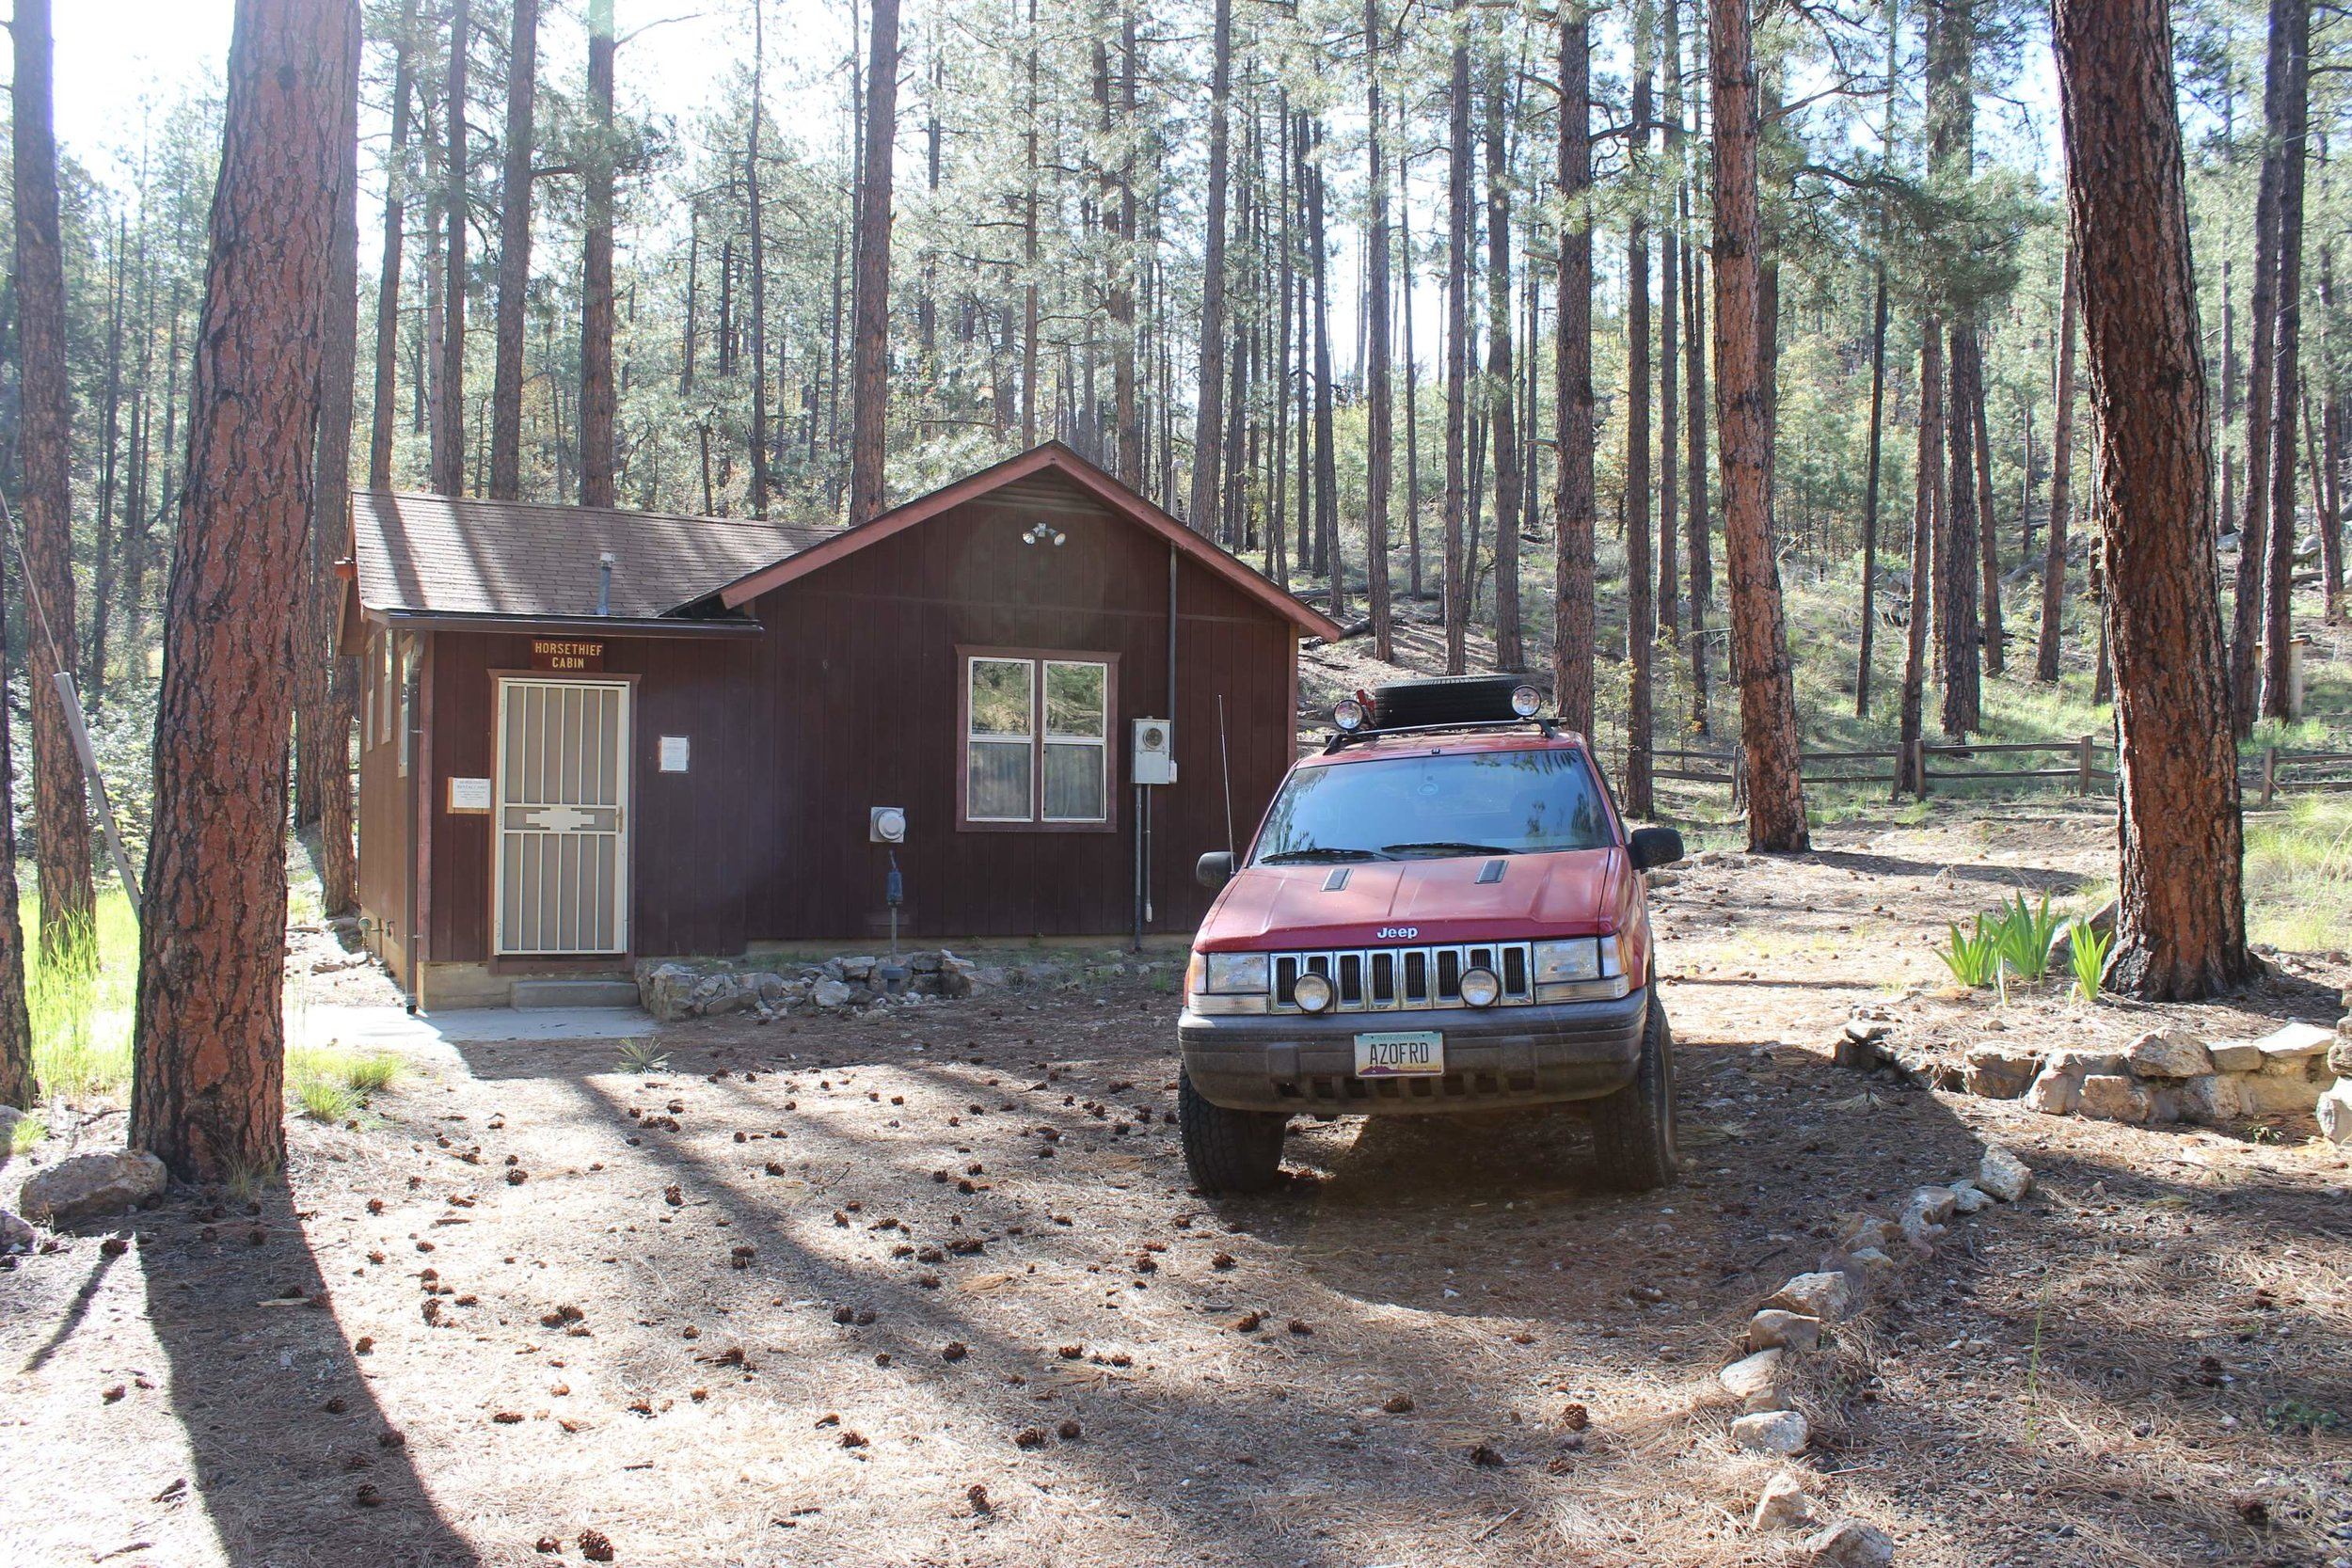 Horsethief Cabin in the morning